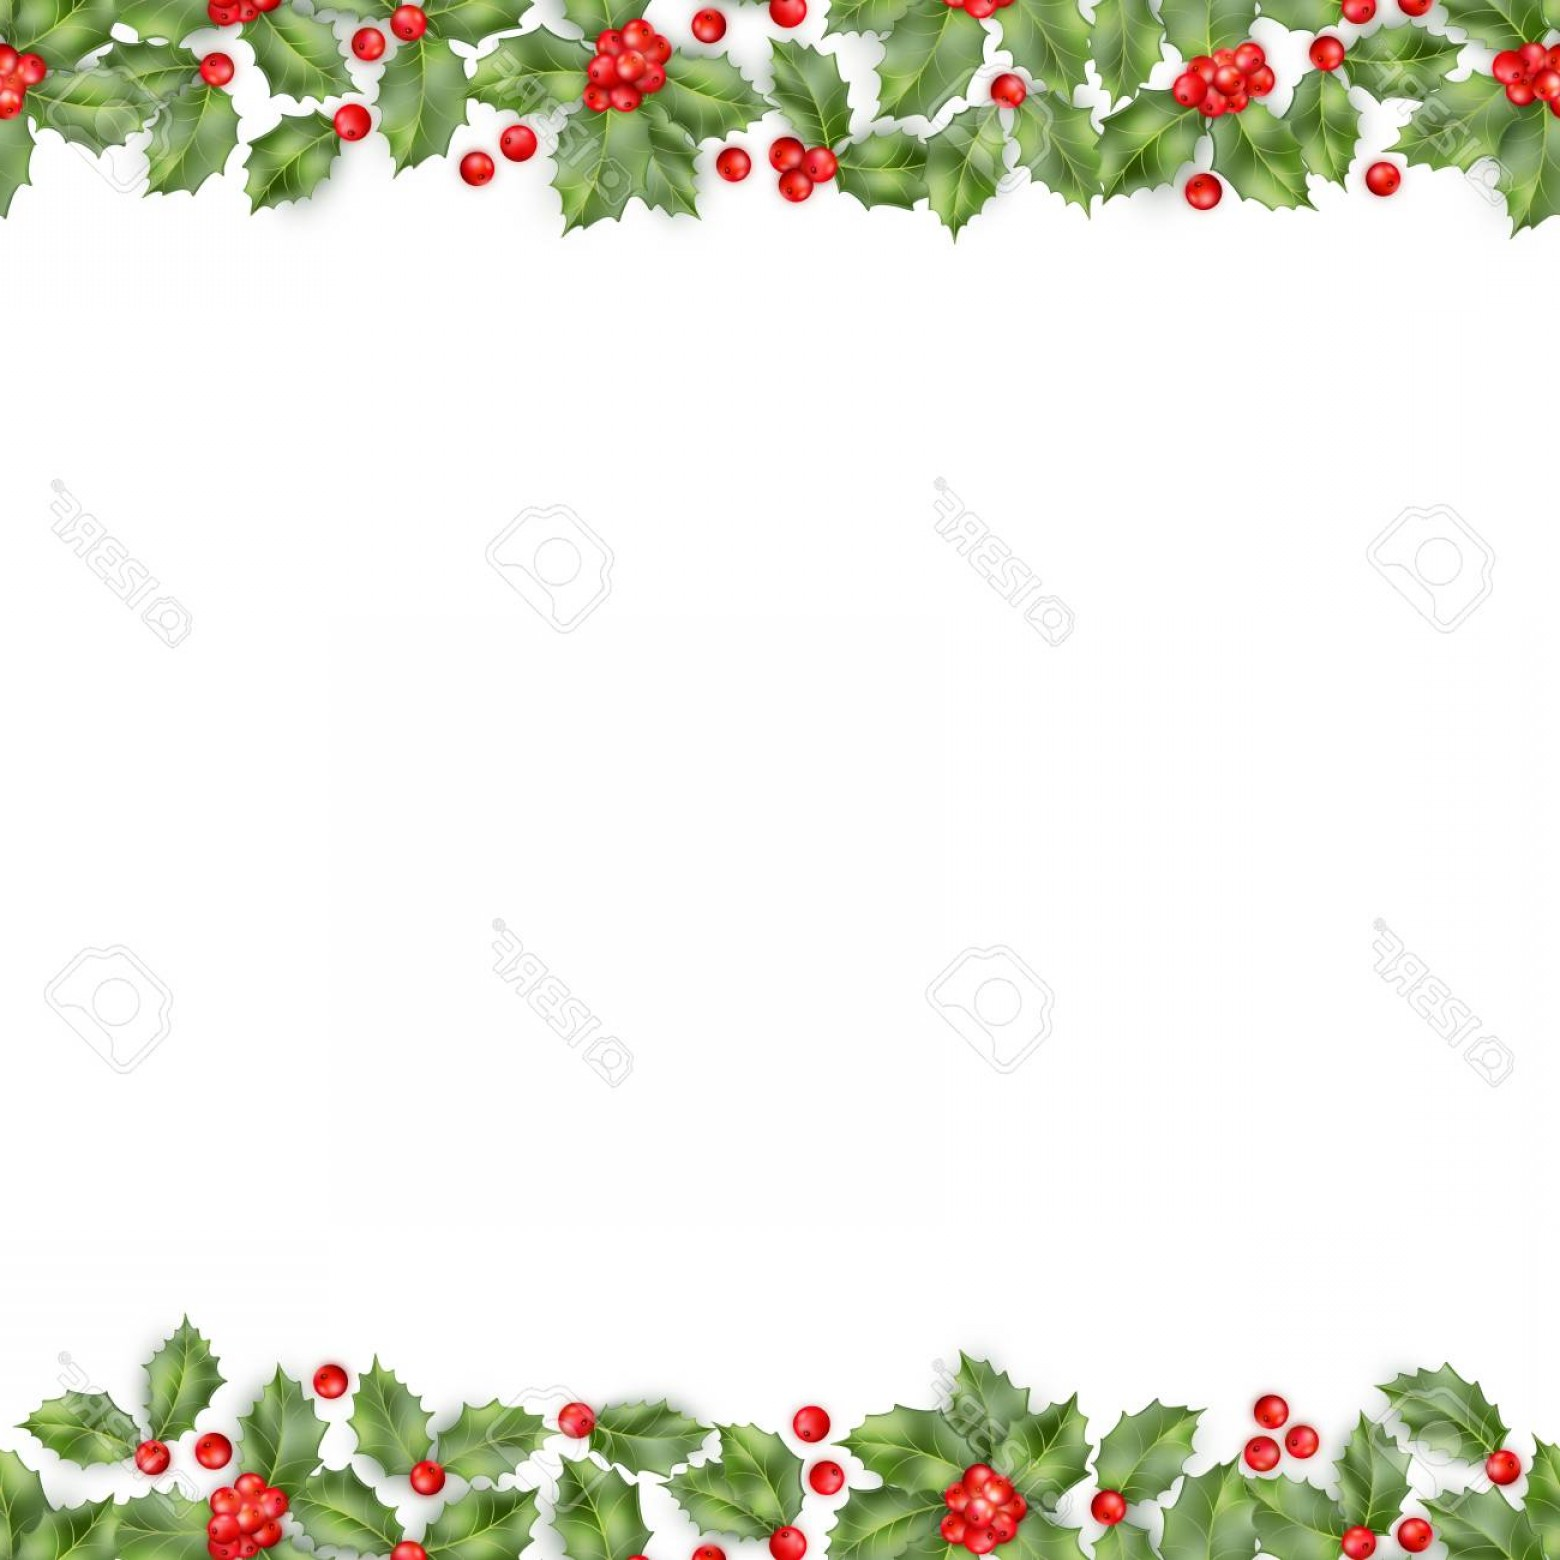 Holly Berry Vector Border: Photostock Vector Seamless Border From Christmas Holly Berry Eps Vector